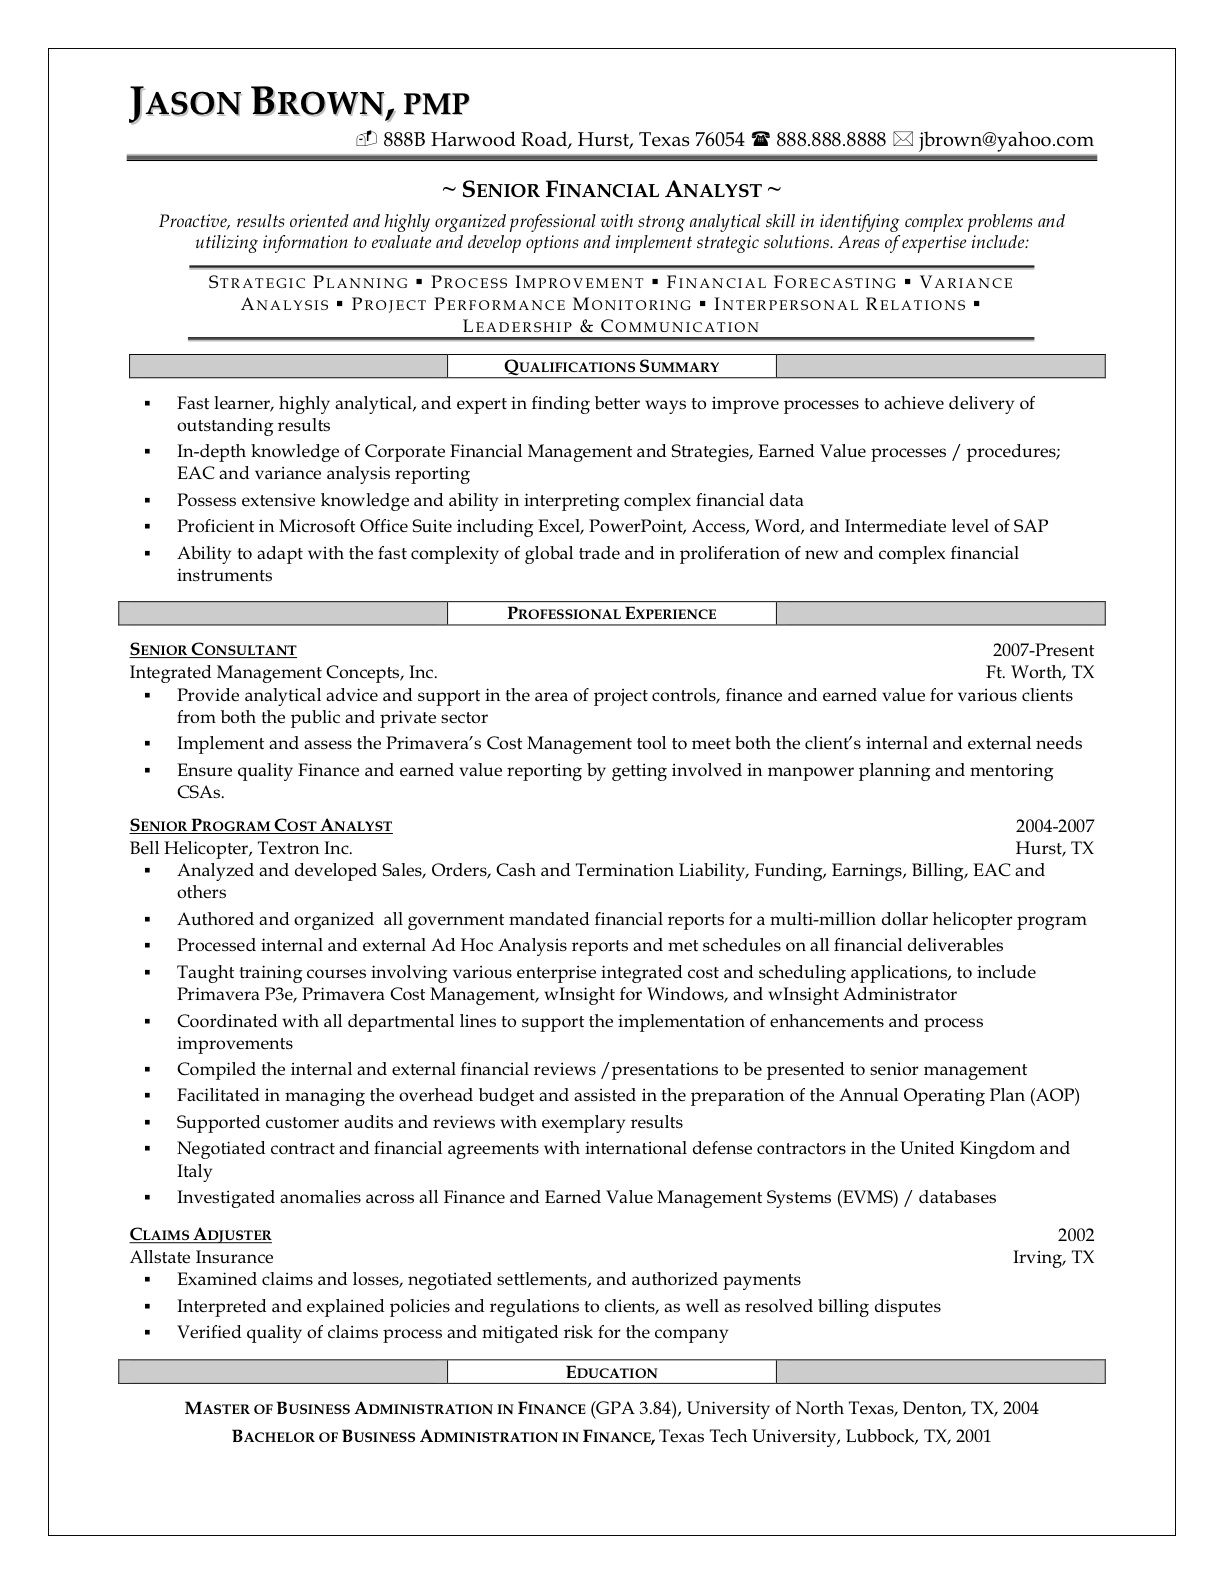 Senior Financial Analyst Resume Phdcoursework Singaporecoursework And Dissertation Share